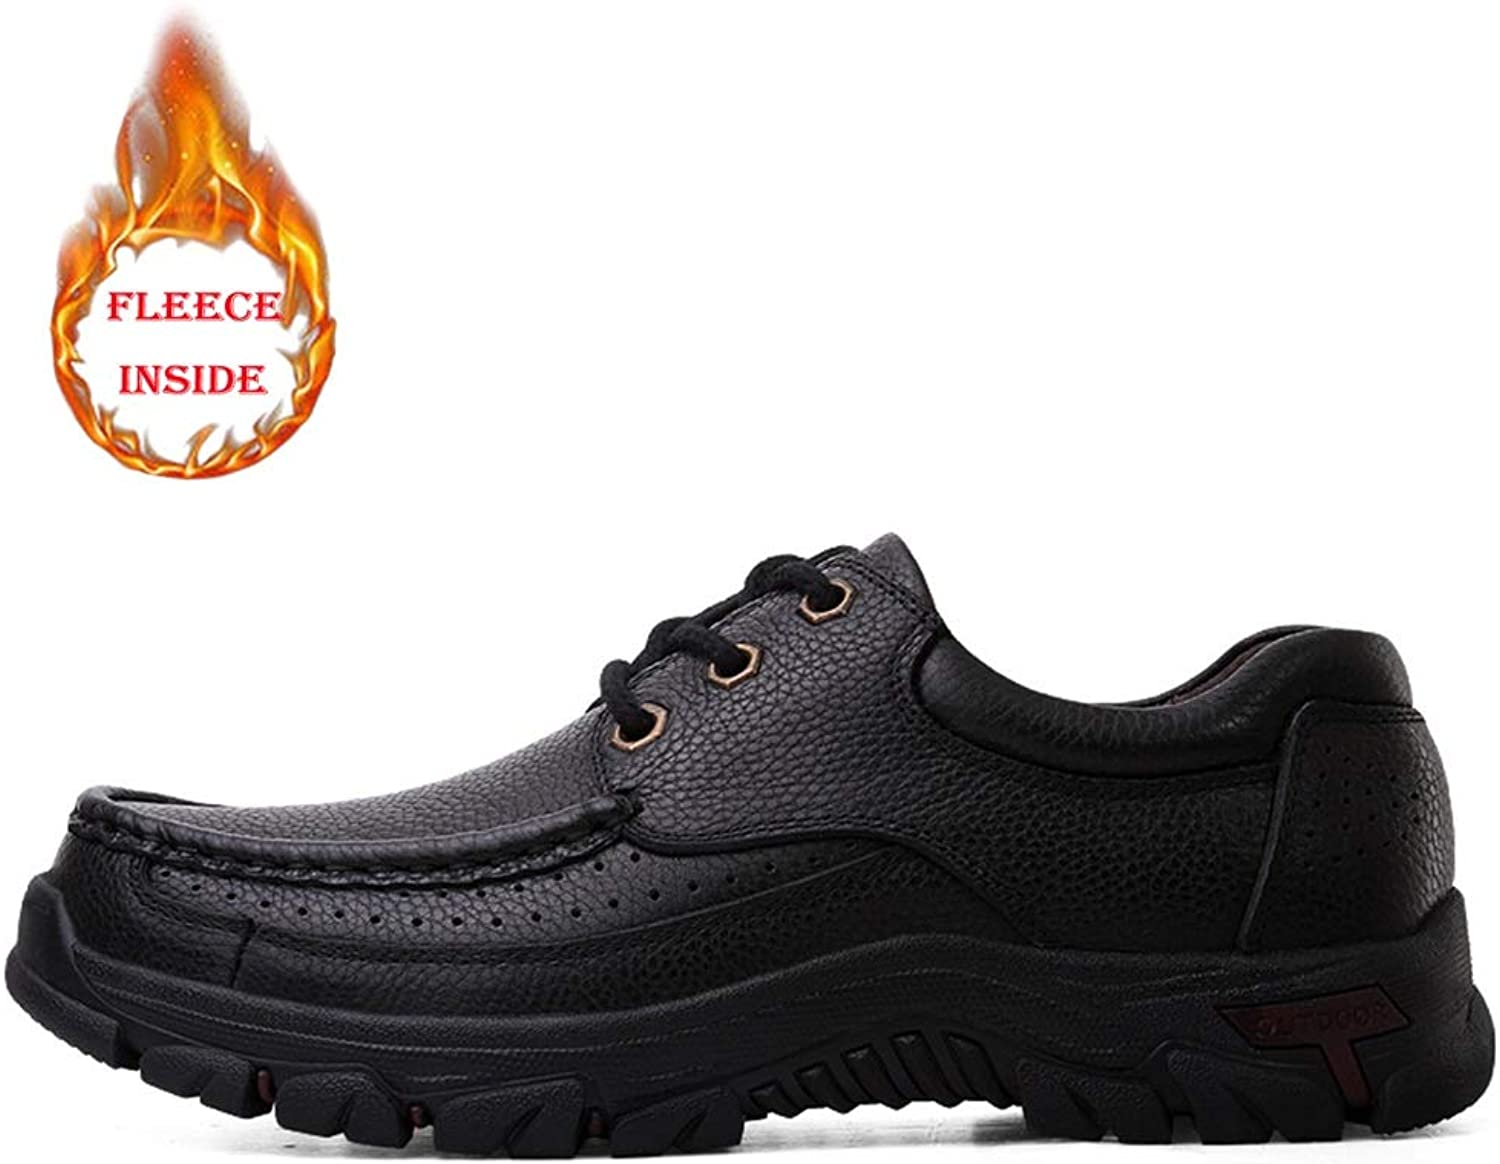 XHD-Men's shoes Men's Fashion Oxford Casual False Fleece Privileged Comfortable Low-top Lace-up Outdoor Leisure shoes(Conventional Optional)